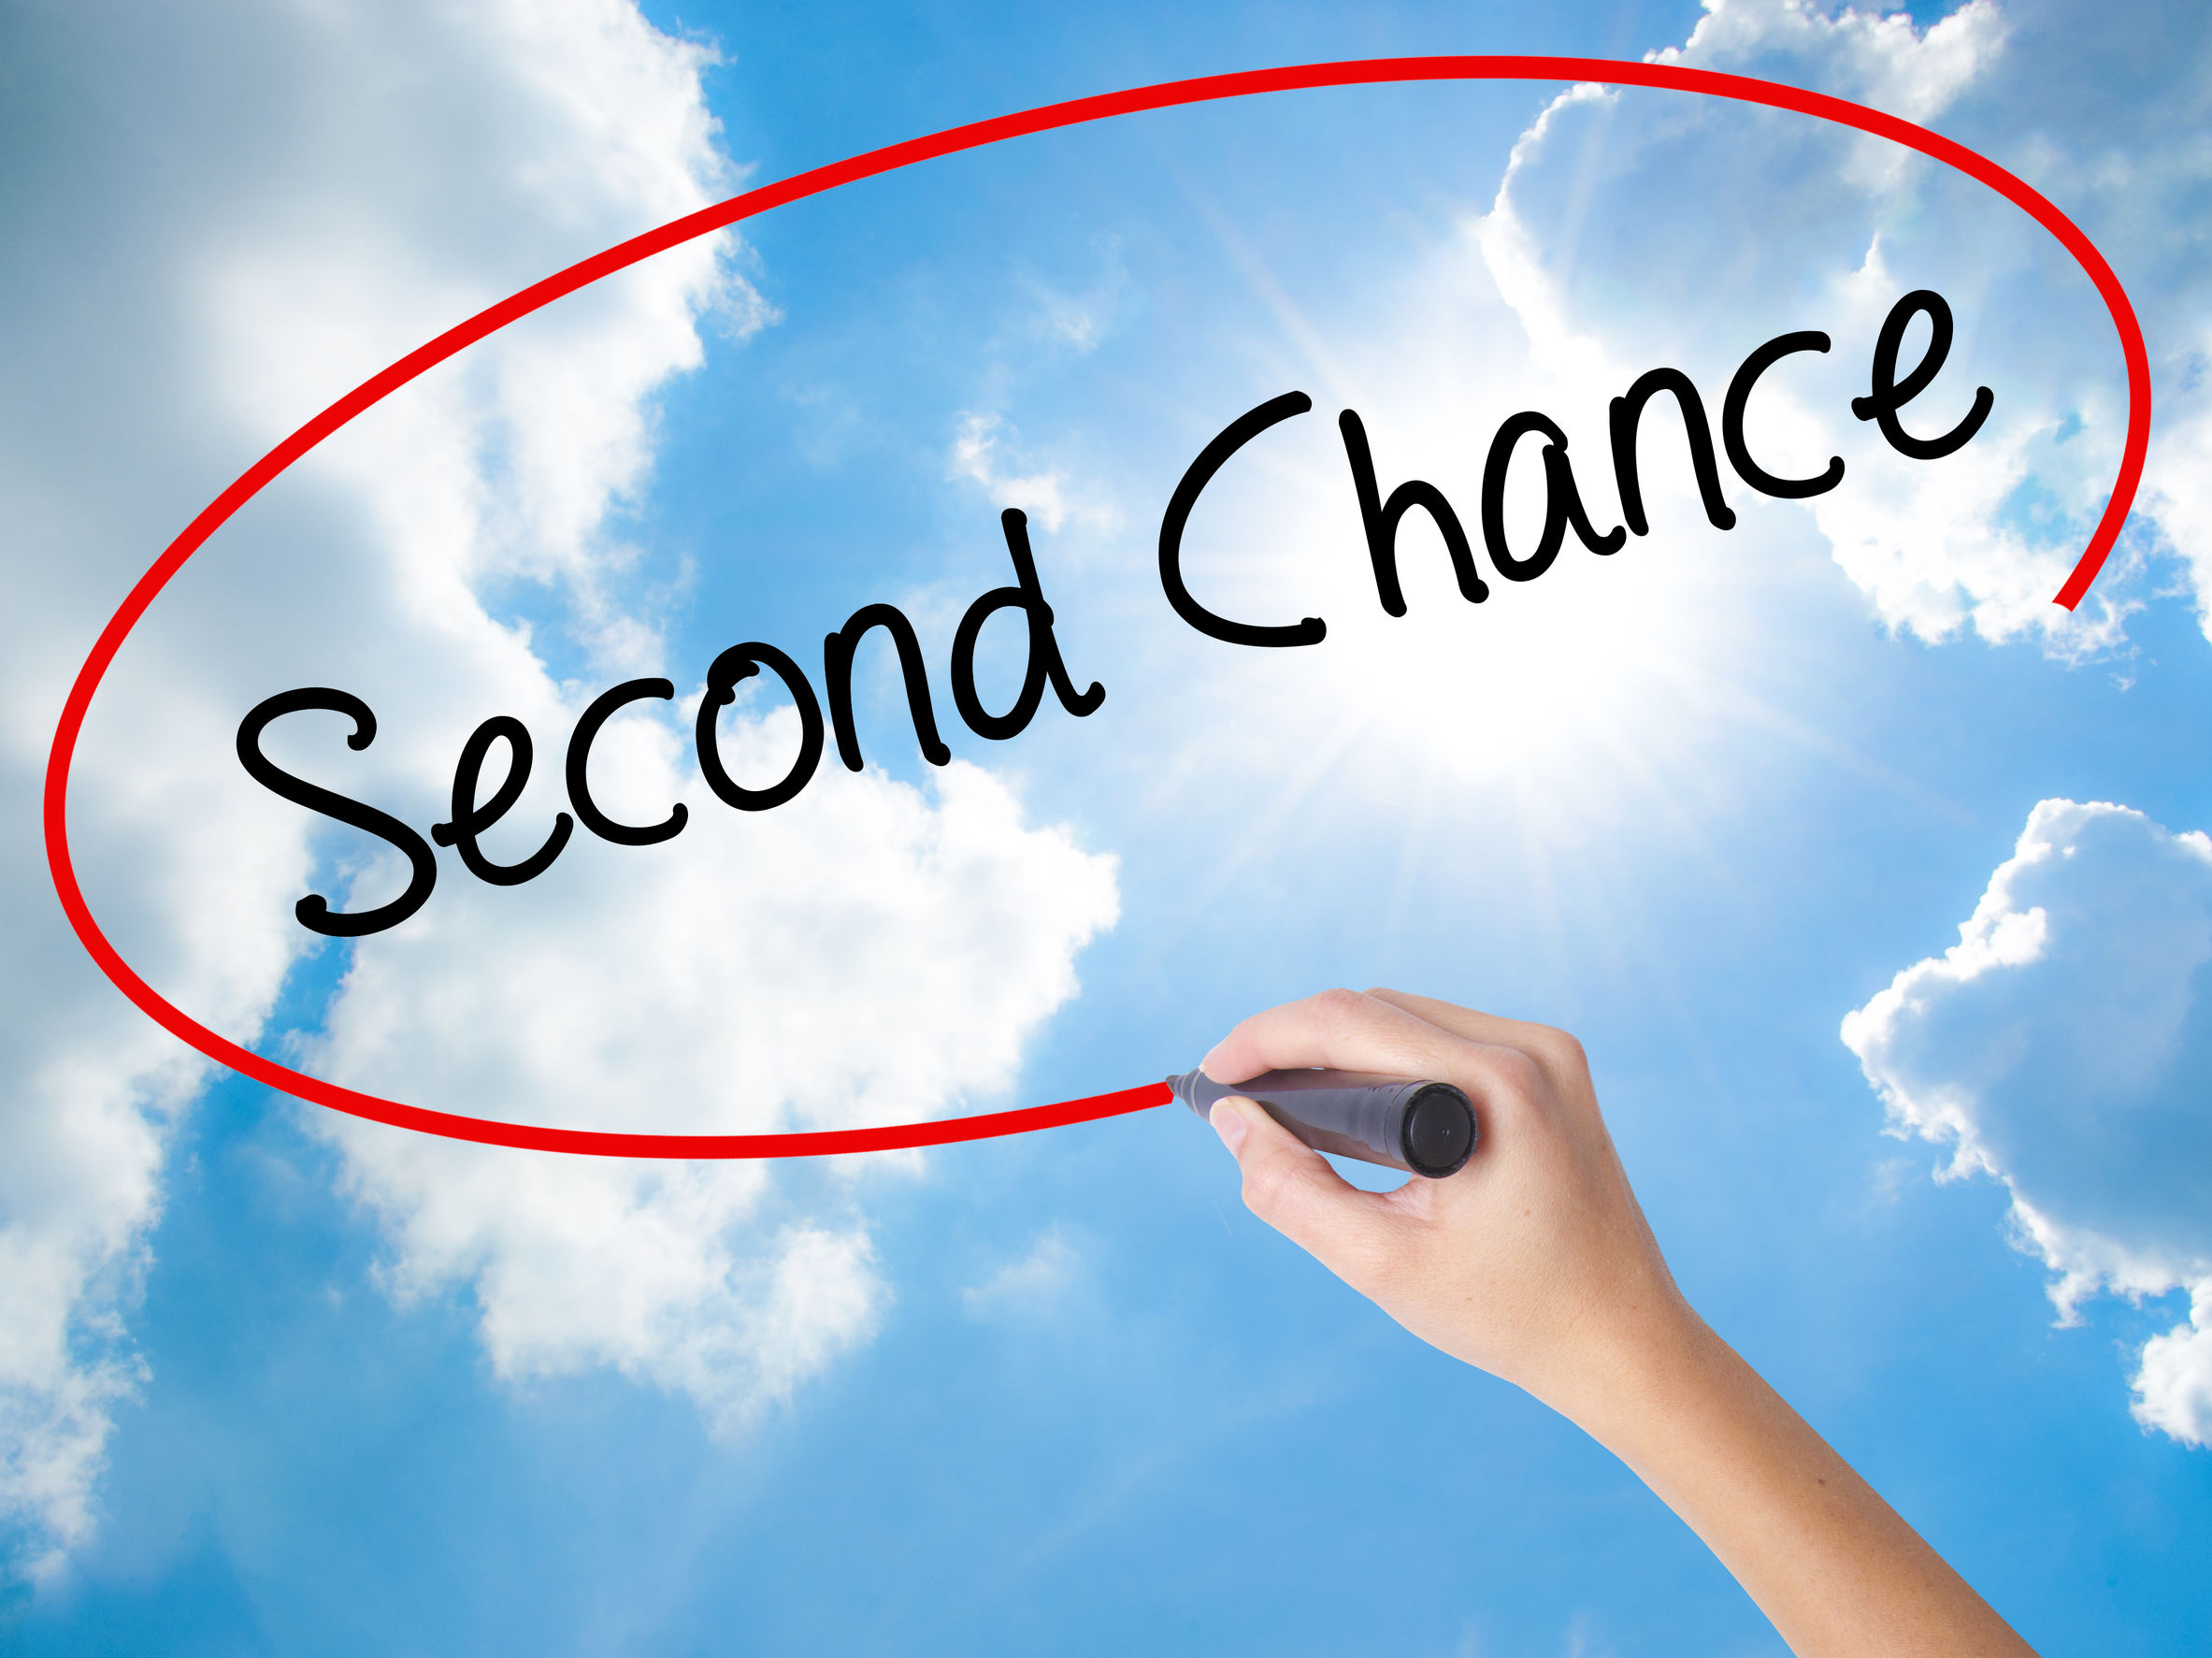 msm-confessions-giving-an-ex-a-second-chance